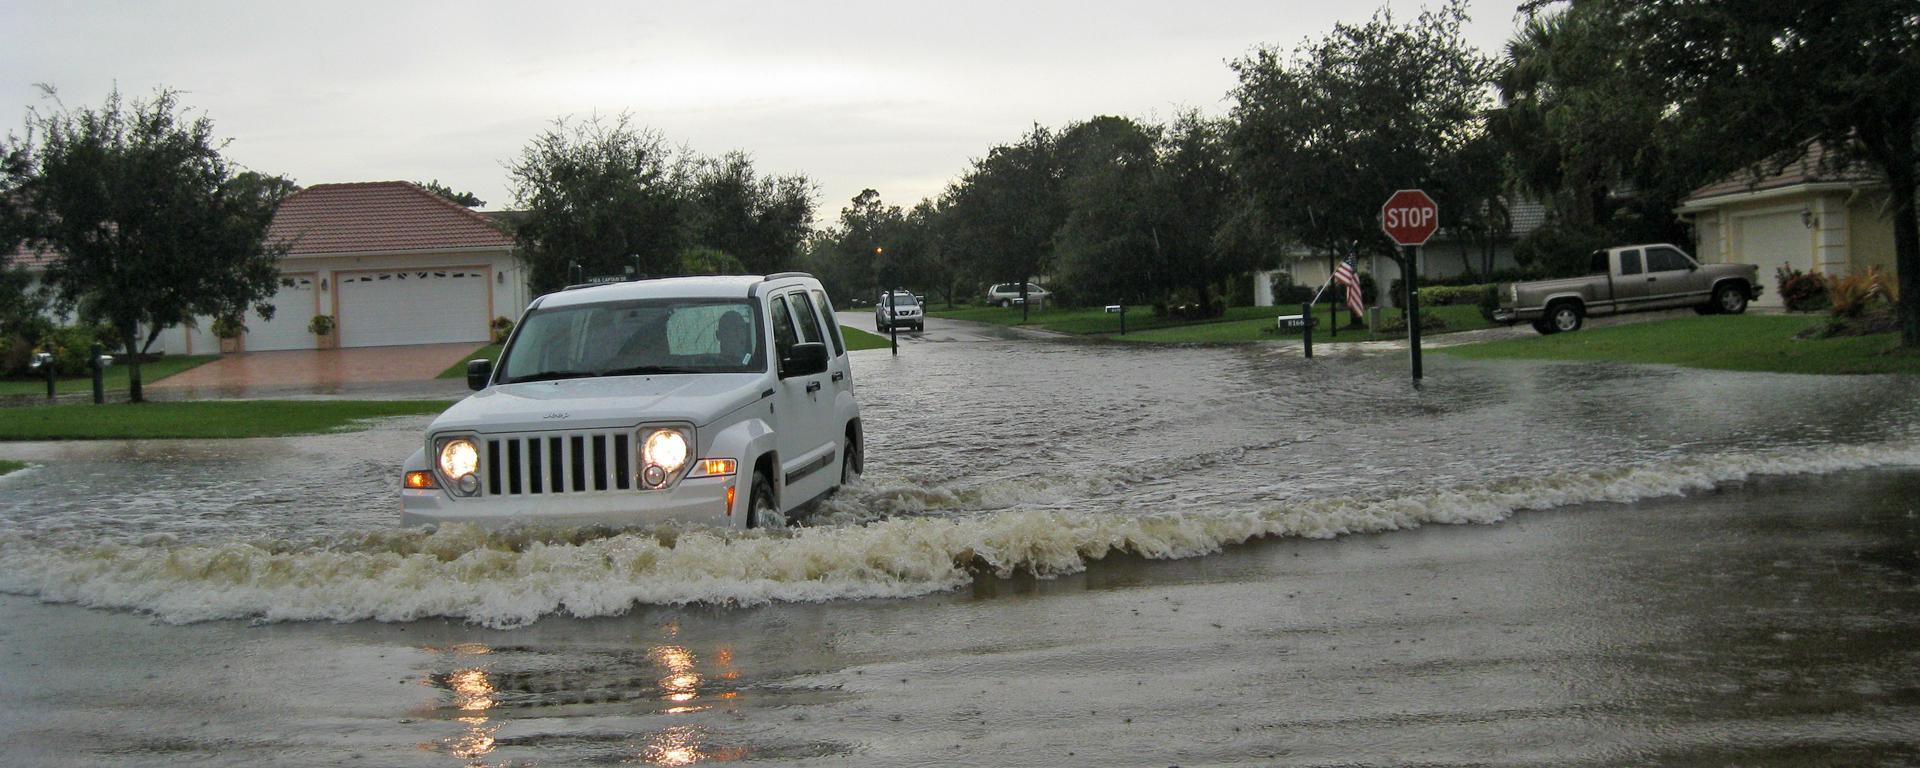 An SUV driving through a flooded neighborhood